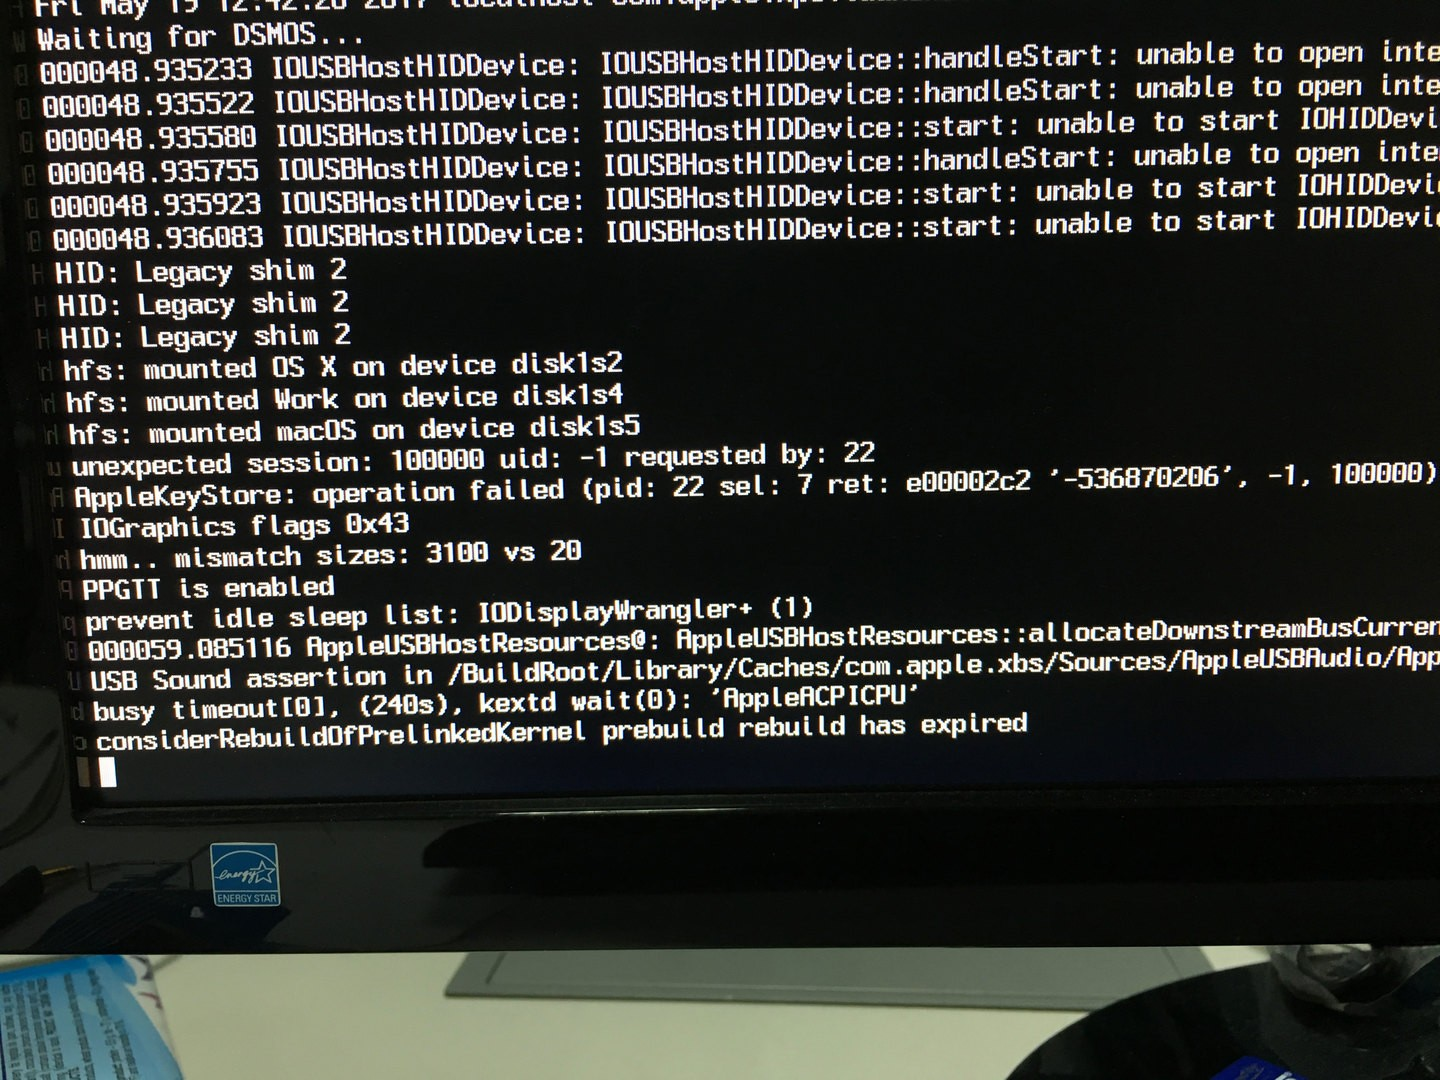 Ozmosis problem with ASUS H97M-E and macOS Sierra - Ozmosis BIOS